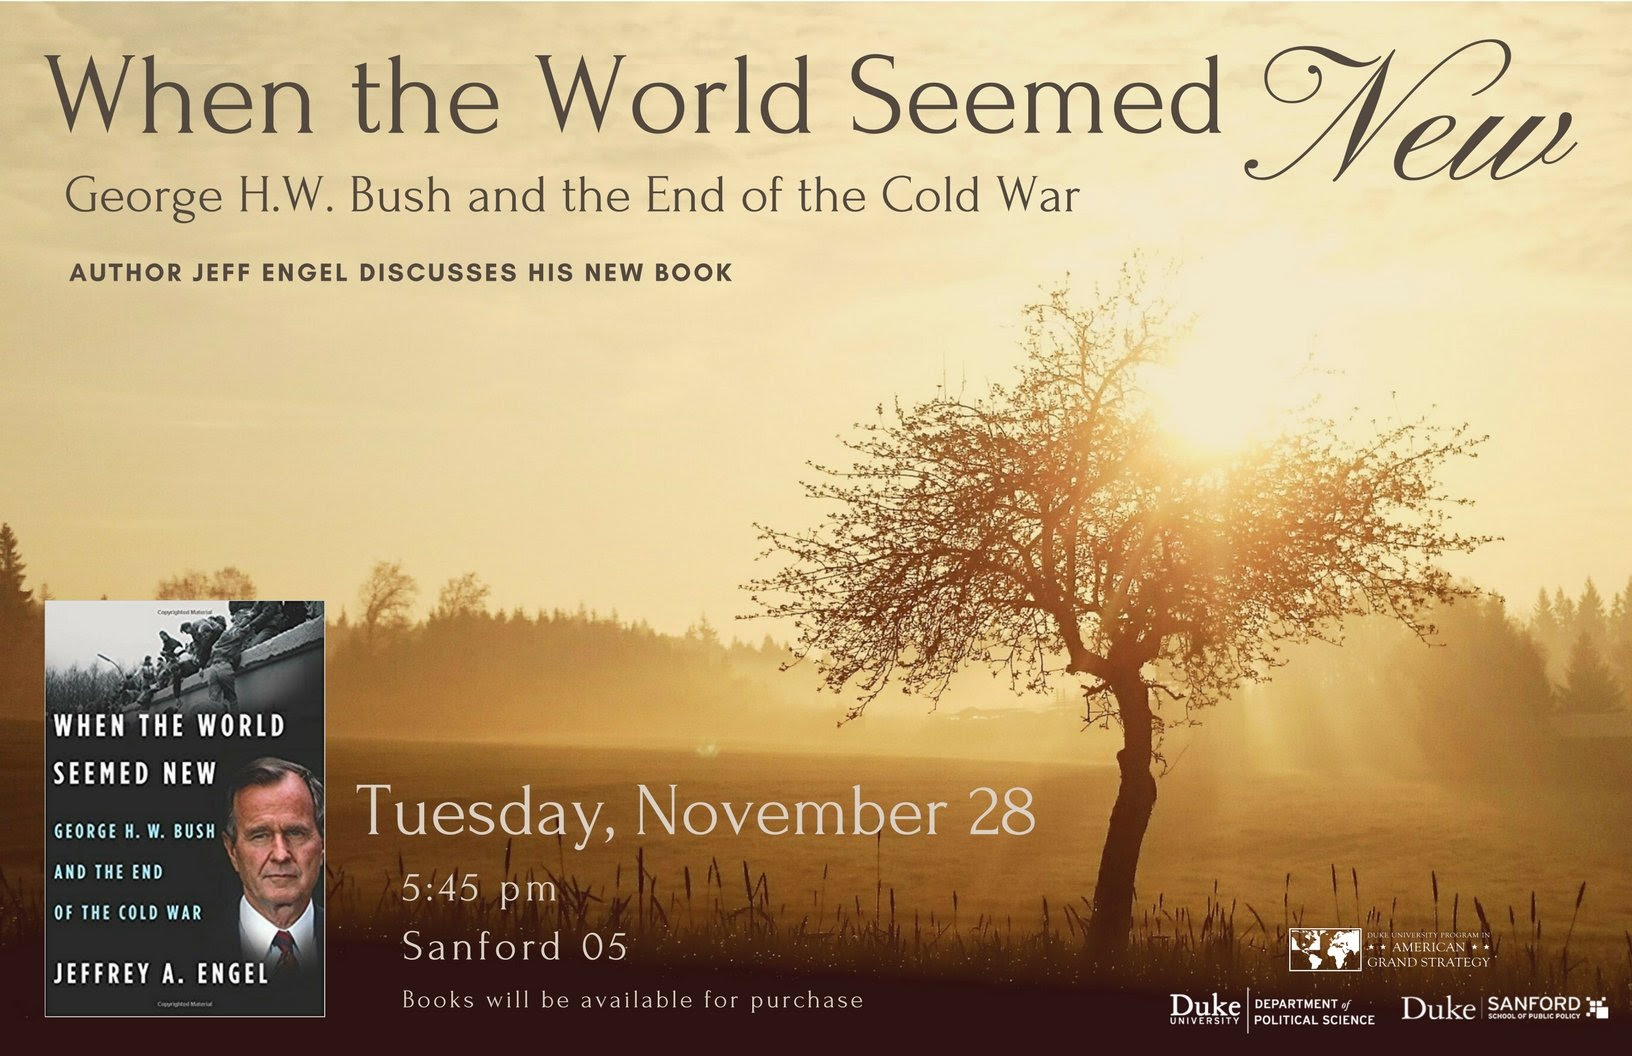 When the World Seemed New: George H.W. Bush and the End of the Cold War A Conversation with Jeff Engel @ Sanford 05 | Durham | North Carolina | United States